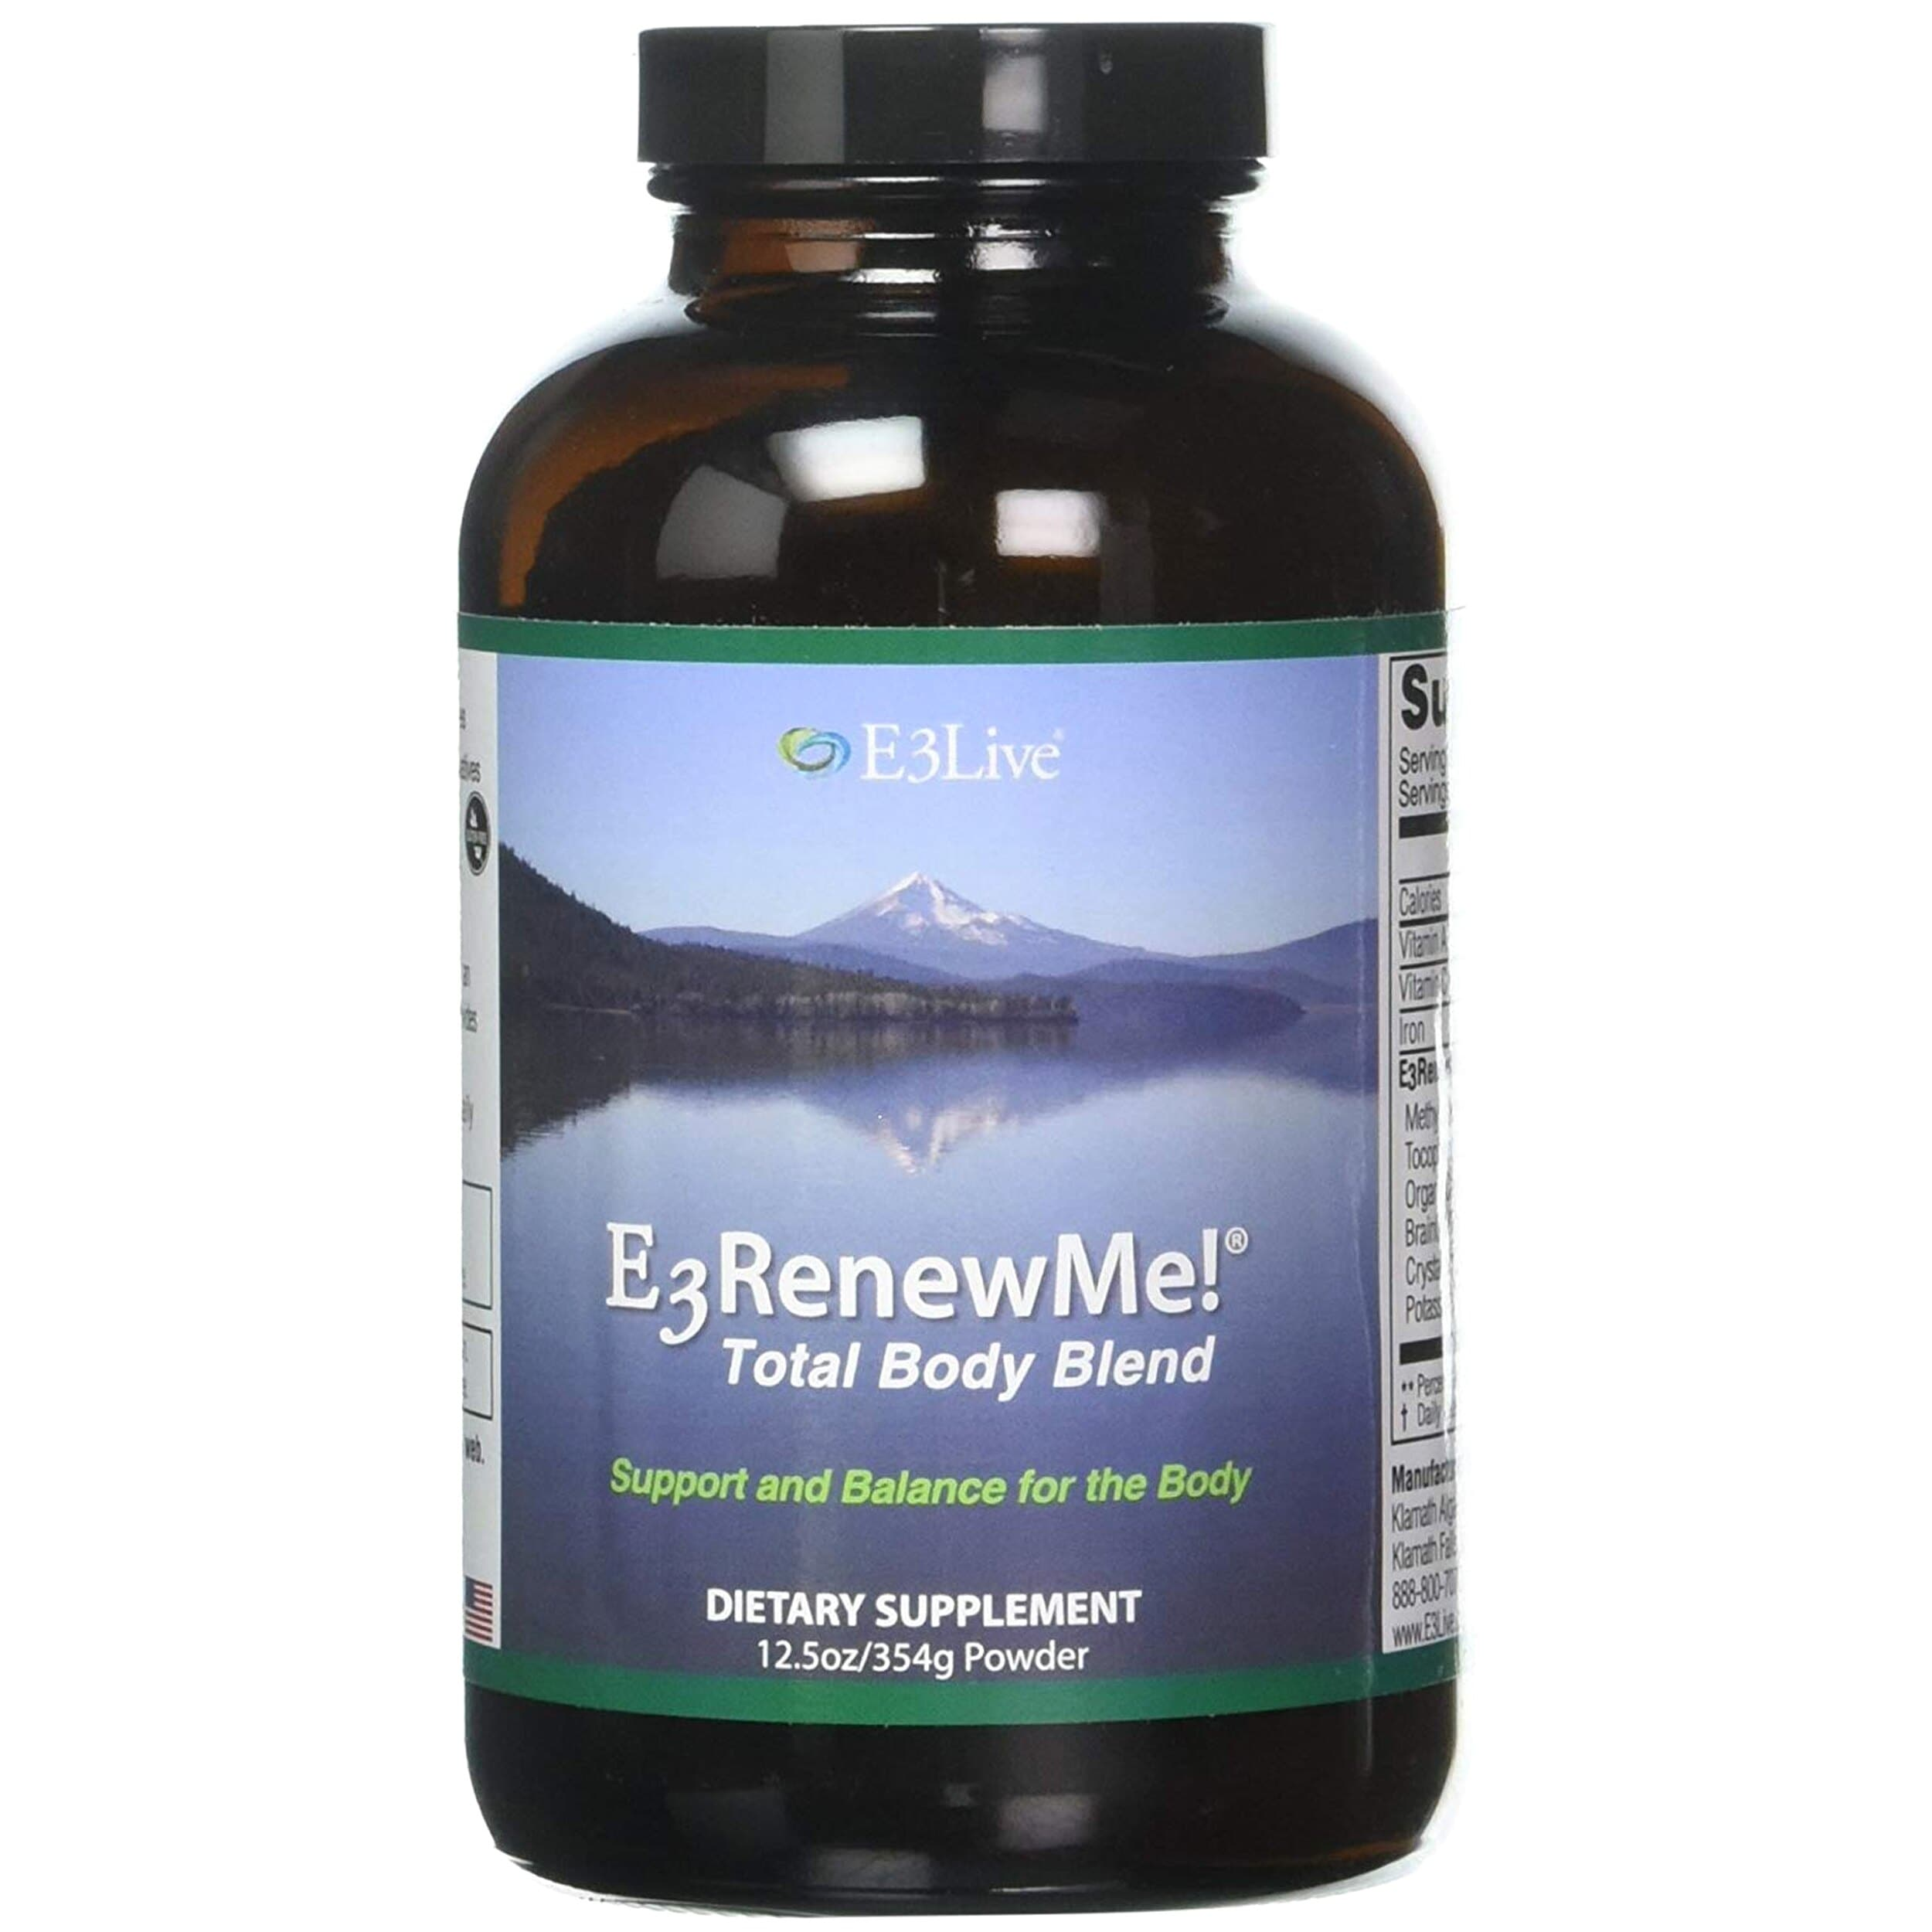 E3 Renew Me! Total Body Blend Powder; 354 grams - FLJ CORPORATIONS